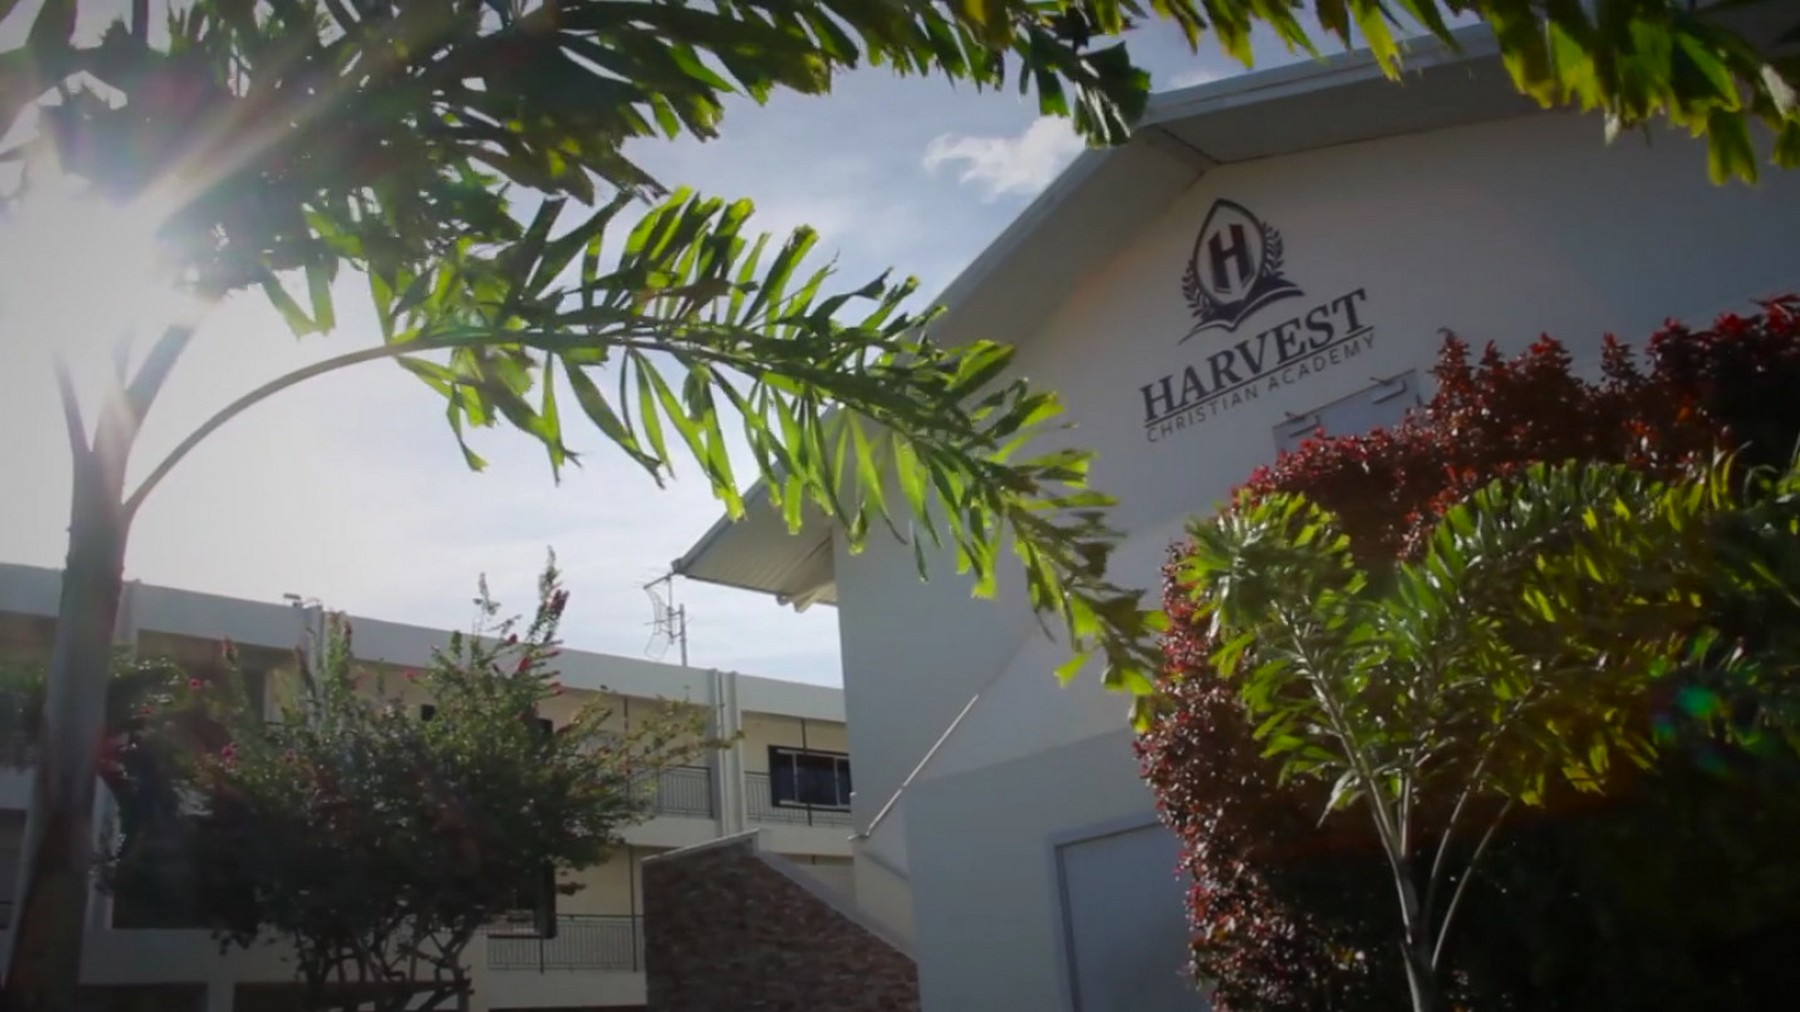 About Harvest Christian Academy